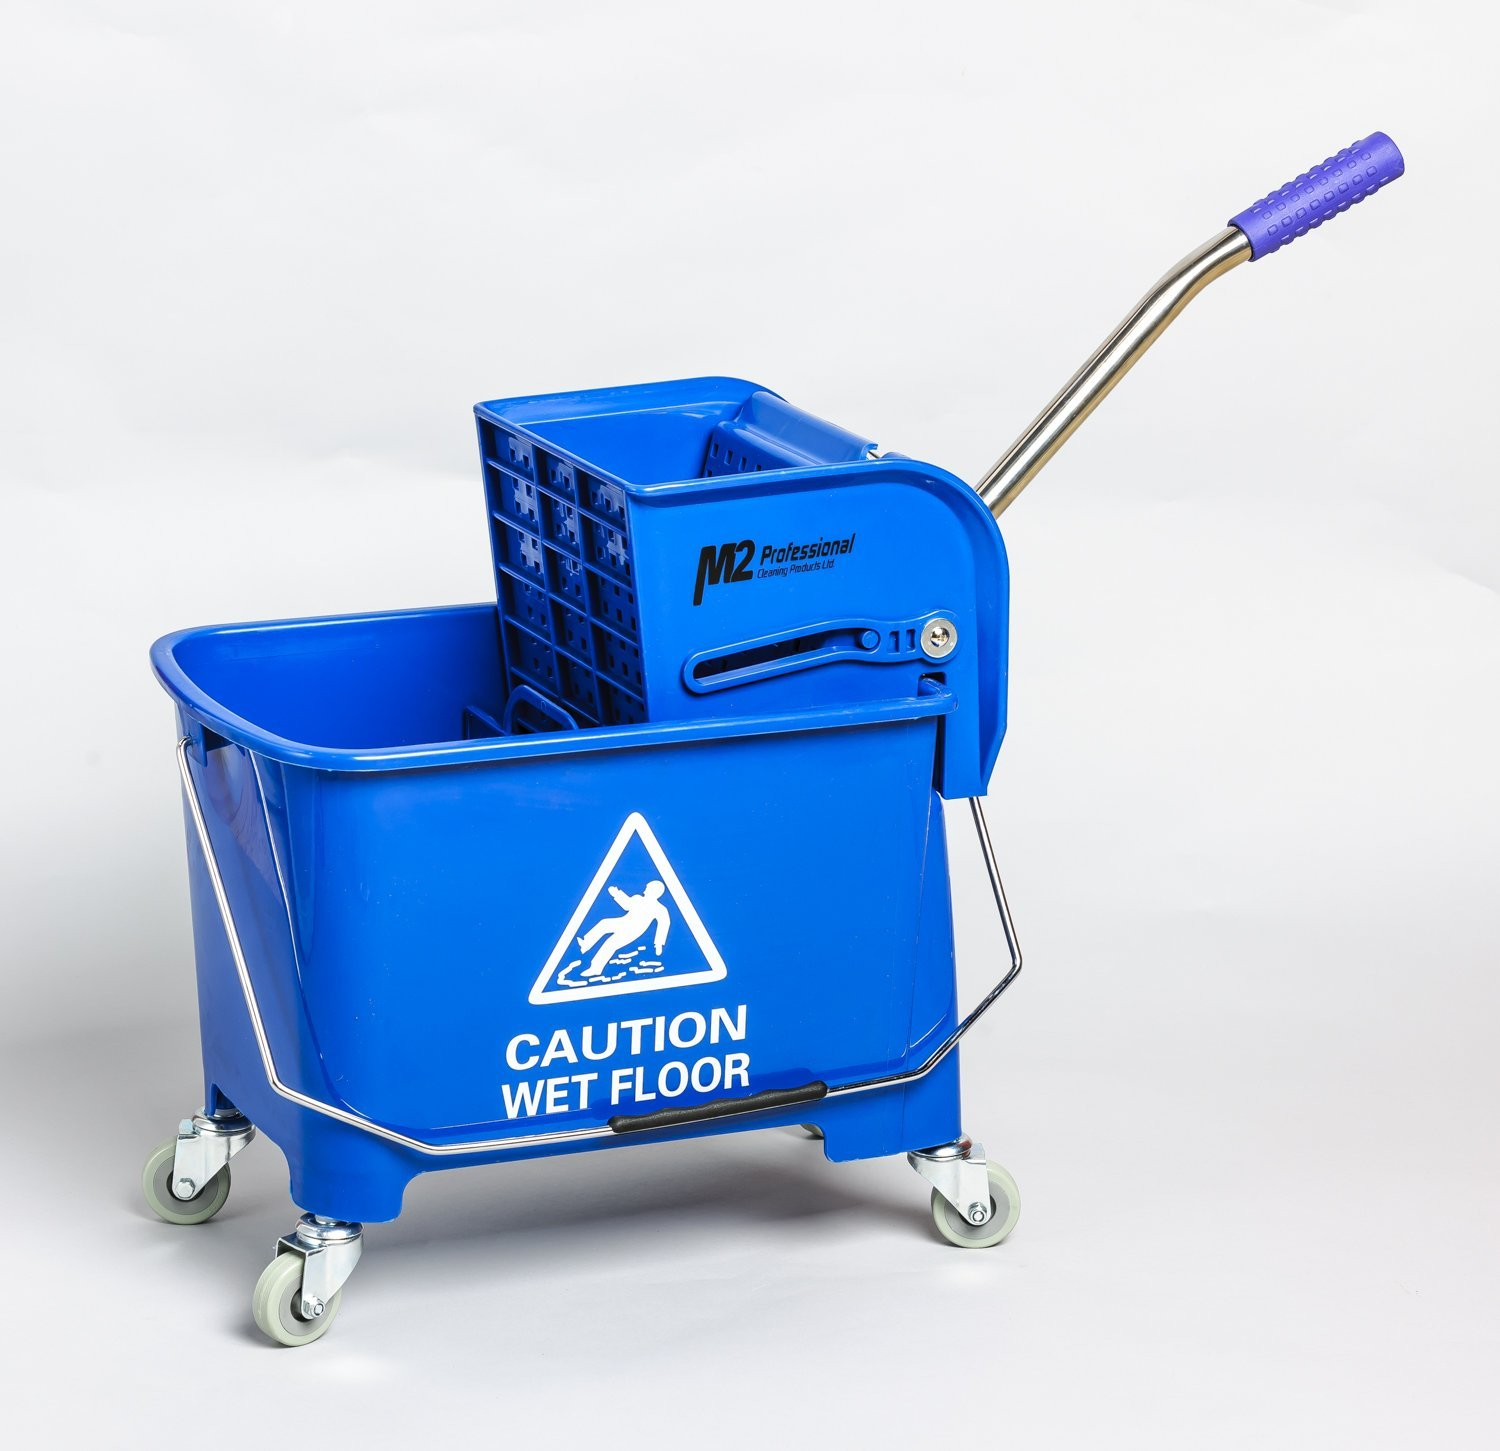 M2 Professional Junior Commercial Junior Mop Bucket with Side Press Wringer and Wheels, 23 Quart/6 Gallon Capacity - Blue